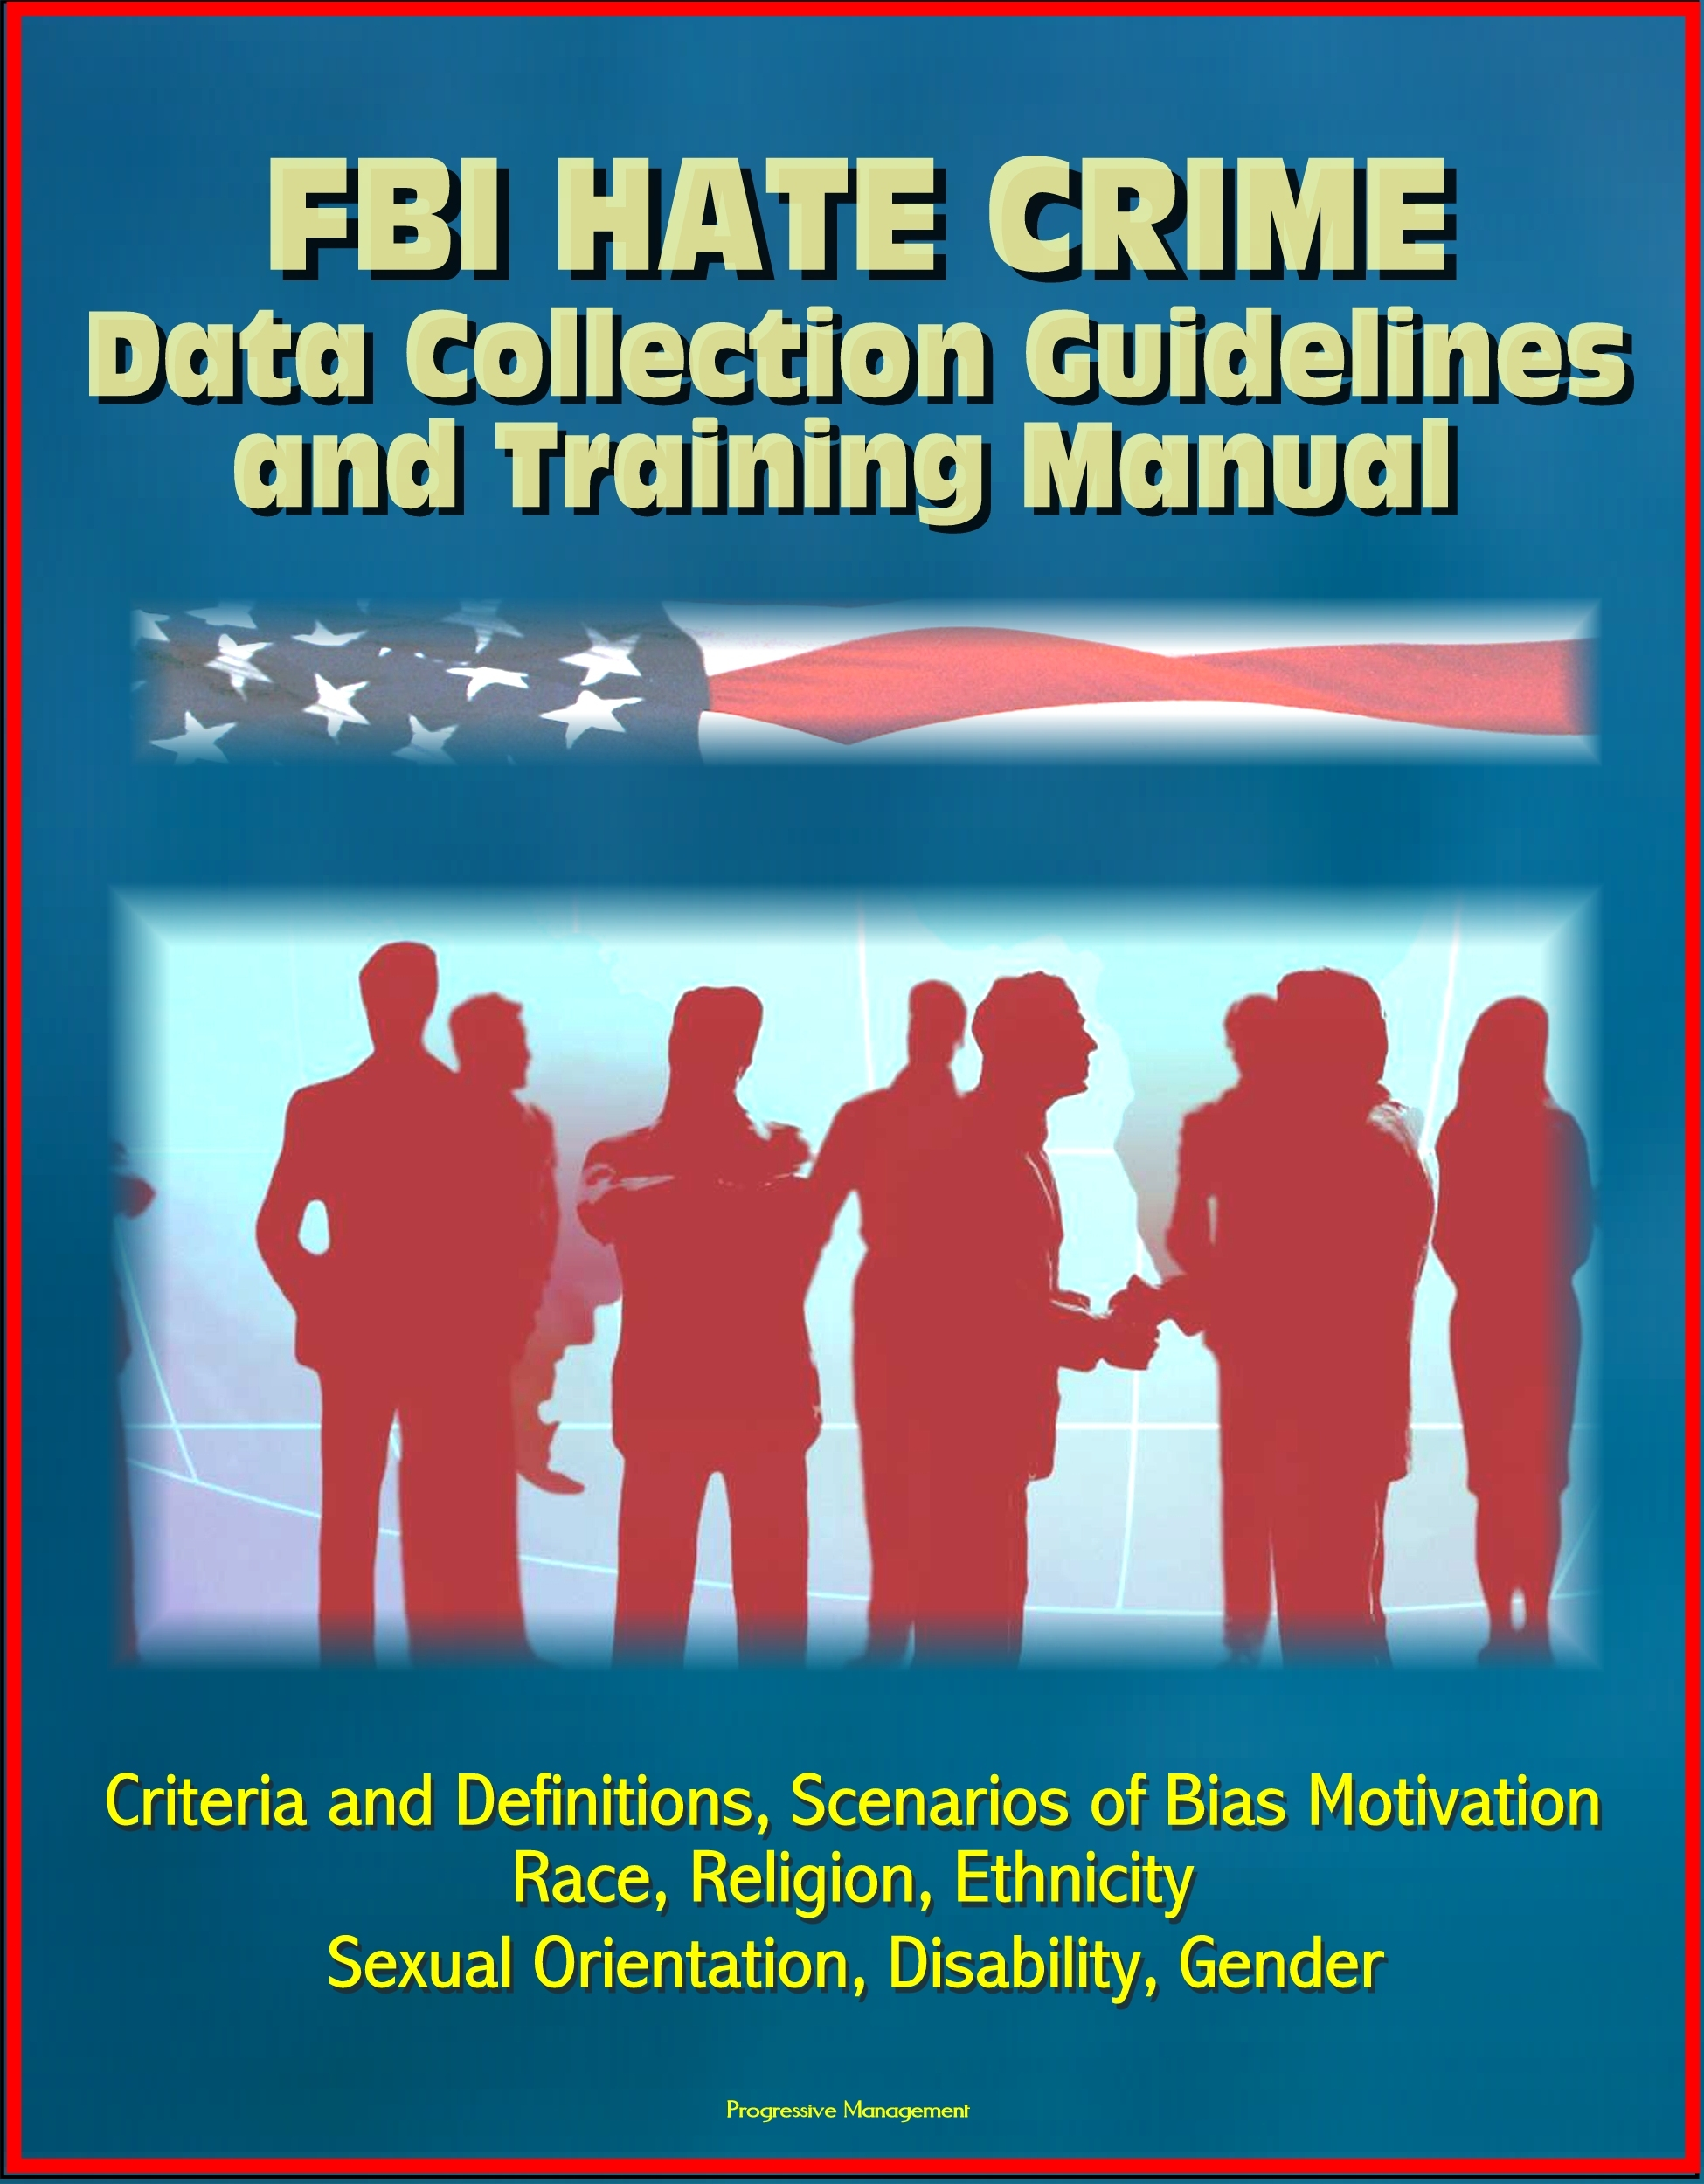 FBI Hate Crime Data Collection Guidelines and Training Manual: Criteria and Definitions, Scenarios of Bias Motivation, Race, Religion, Ethnicity, Sexual Orientation, Disability, Gender